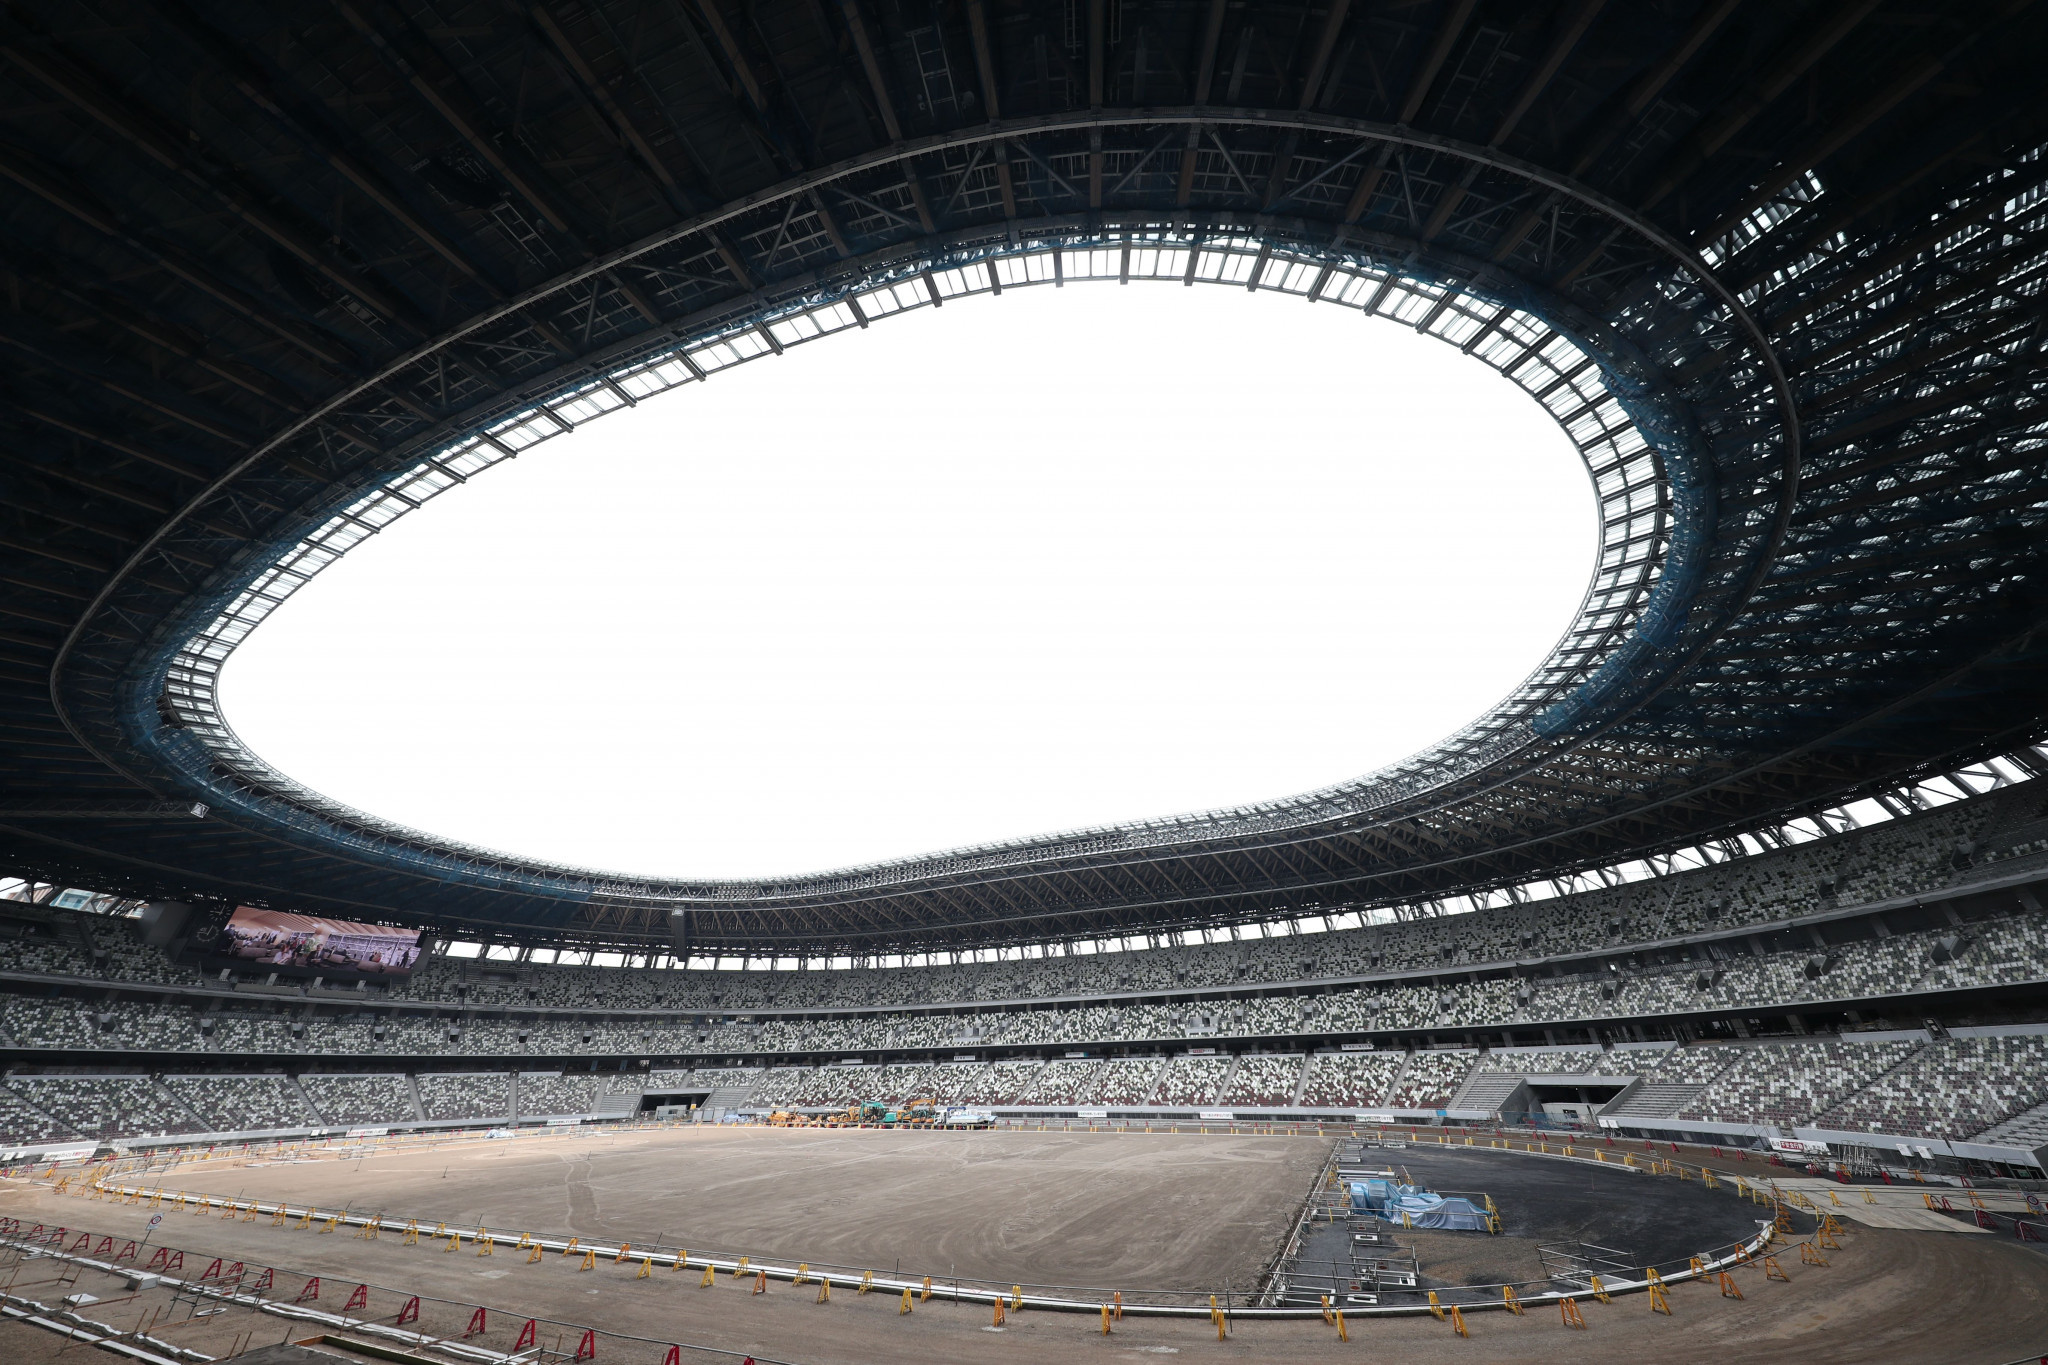 Work on the new National Stadium was delayed after the original plan was scrapped following an outcry over the cost of the design by Iraqi-British architect Zaha Hadid ©Getty Images